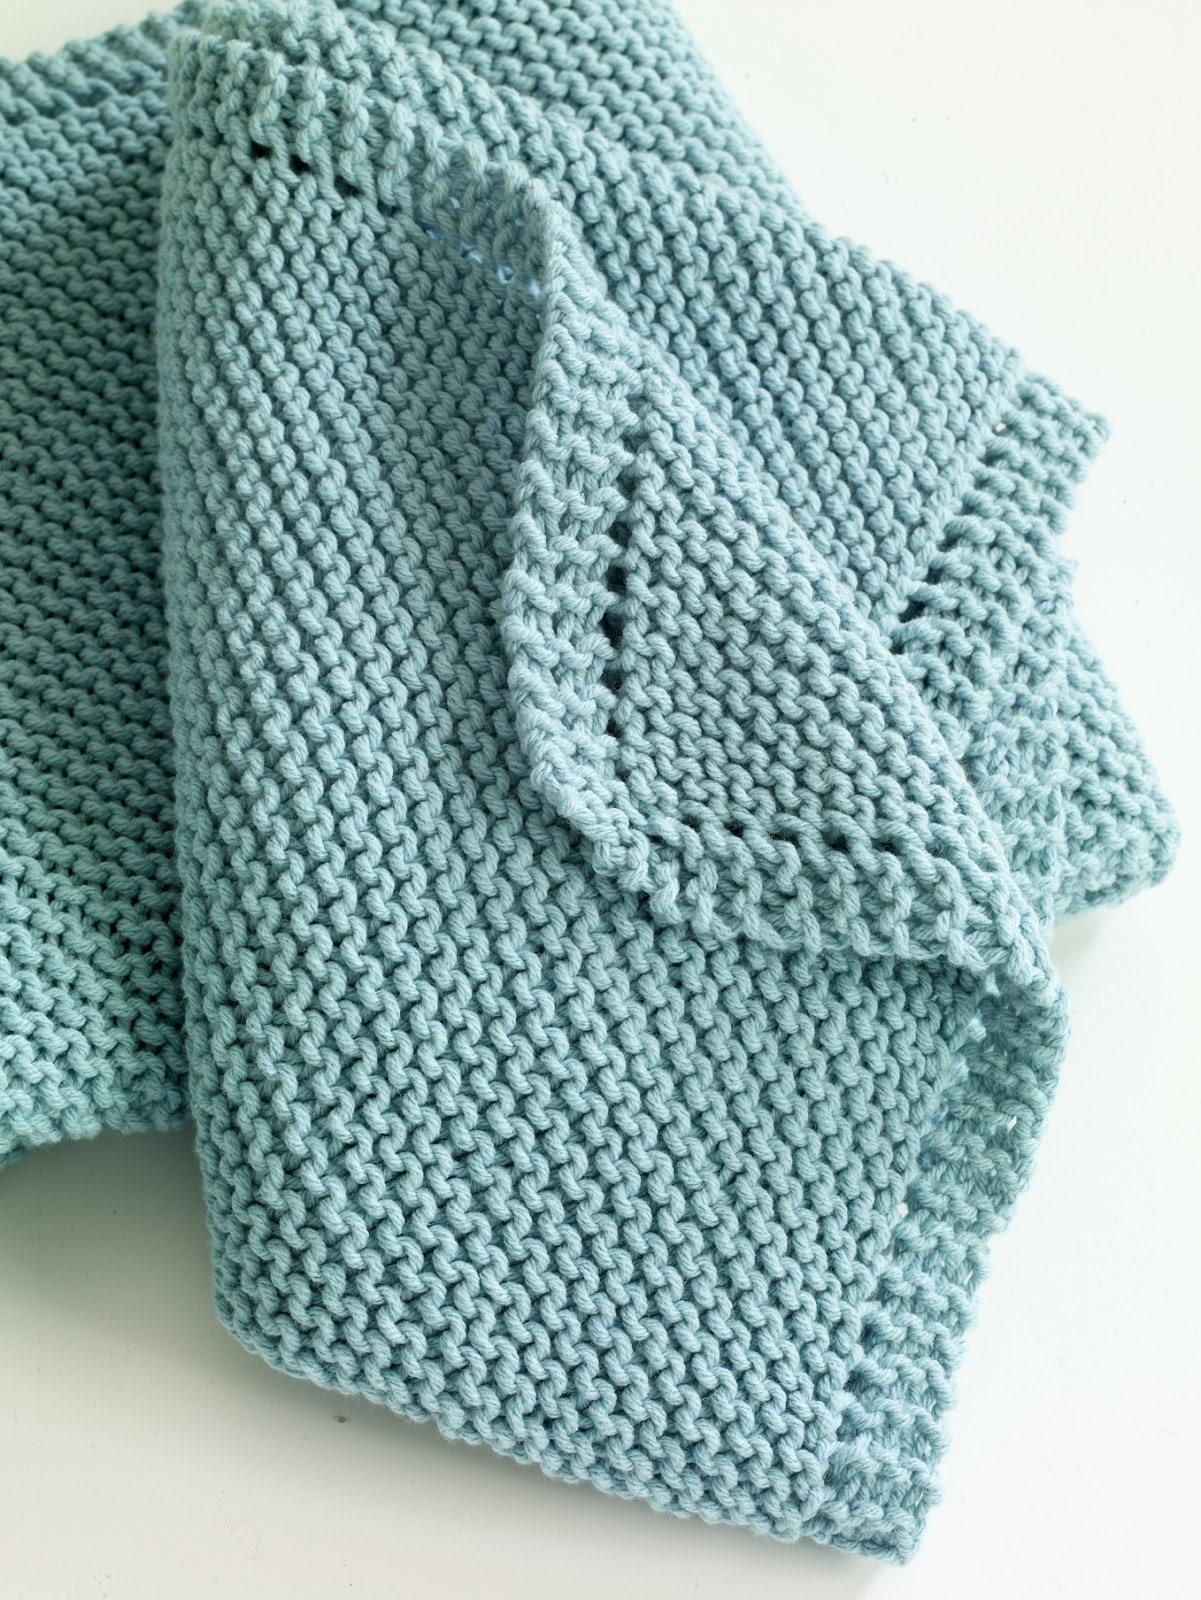 Free Baby Blanket Knitting Patterns For Beginners : Serenity Knits